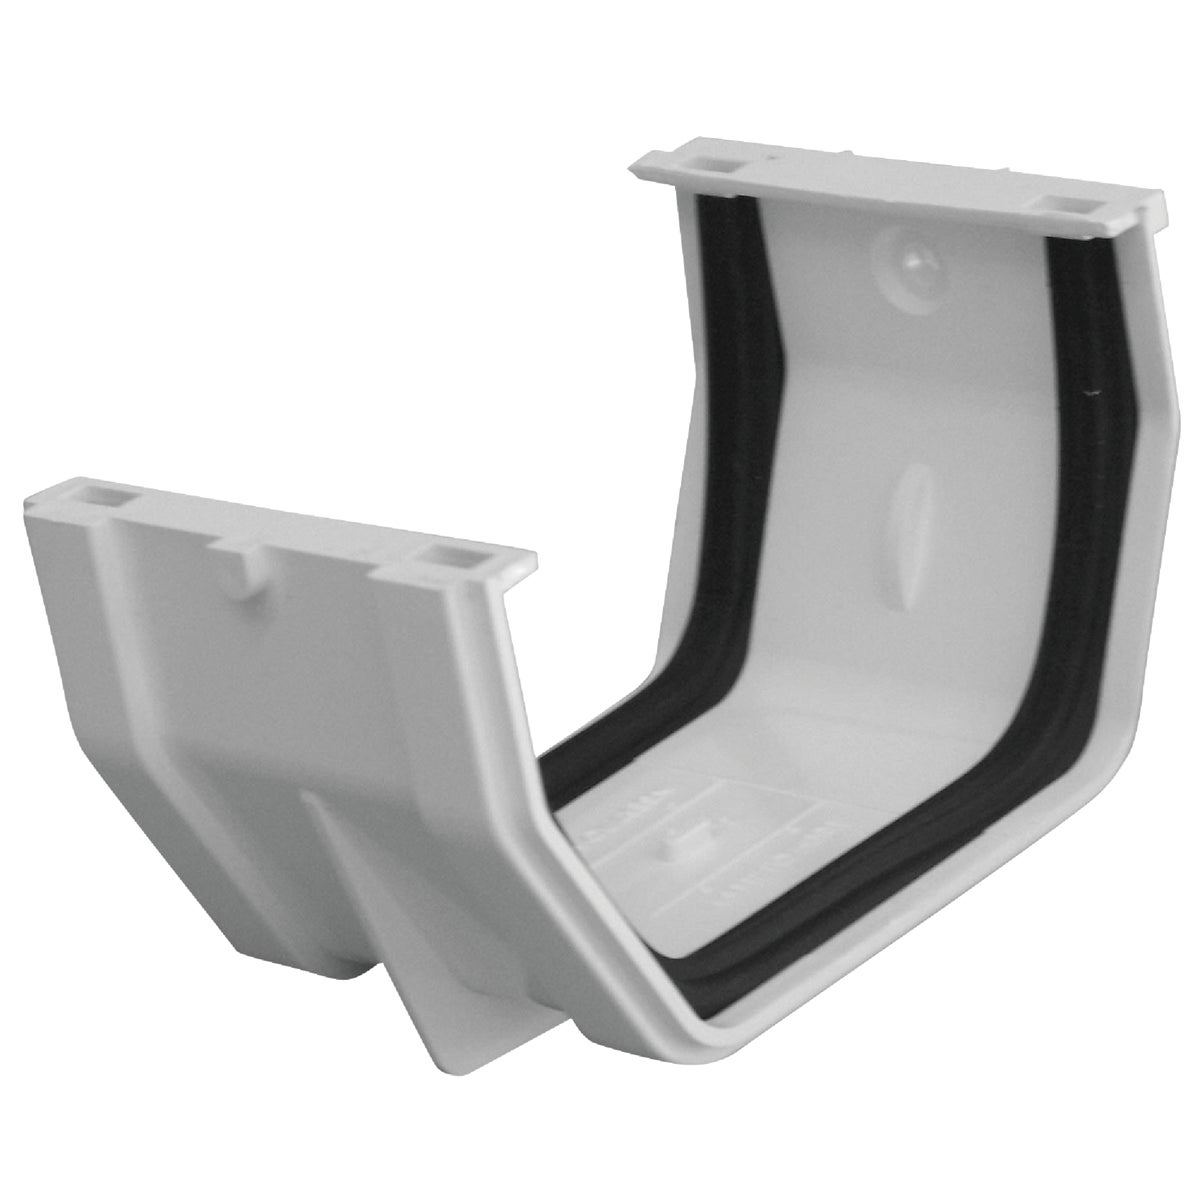 WHT GUTTER SLIP JOINT - RW105 by Genova Products